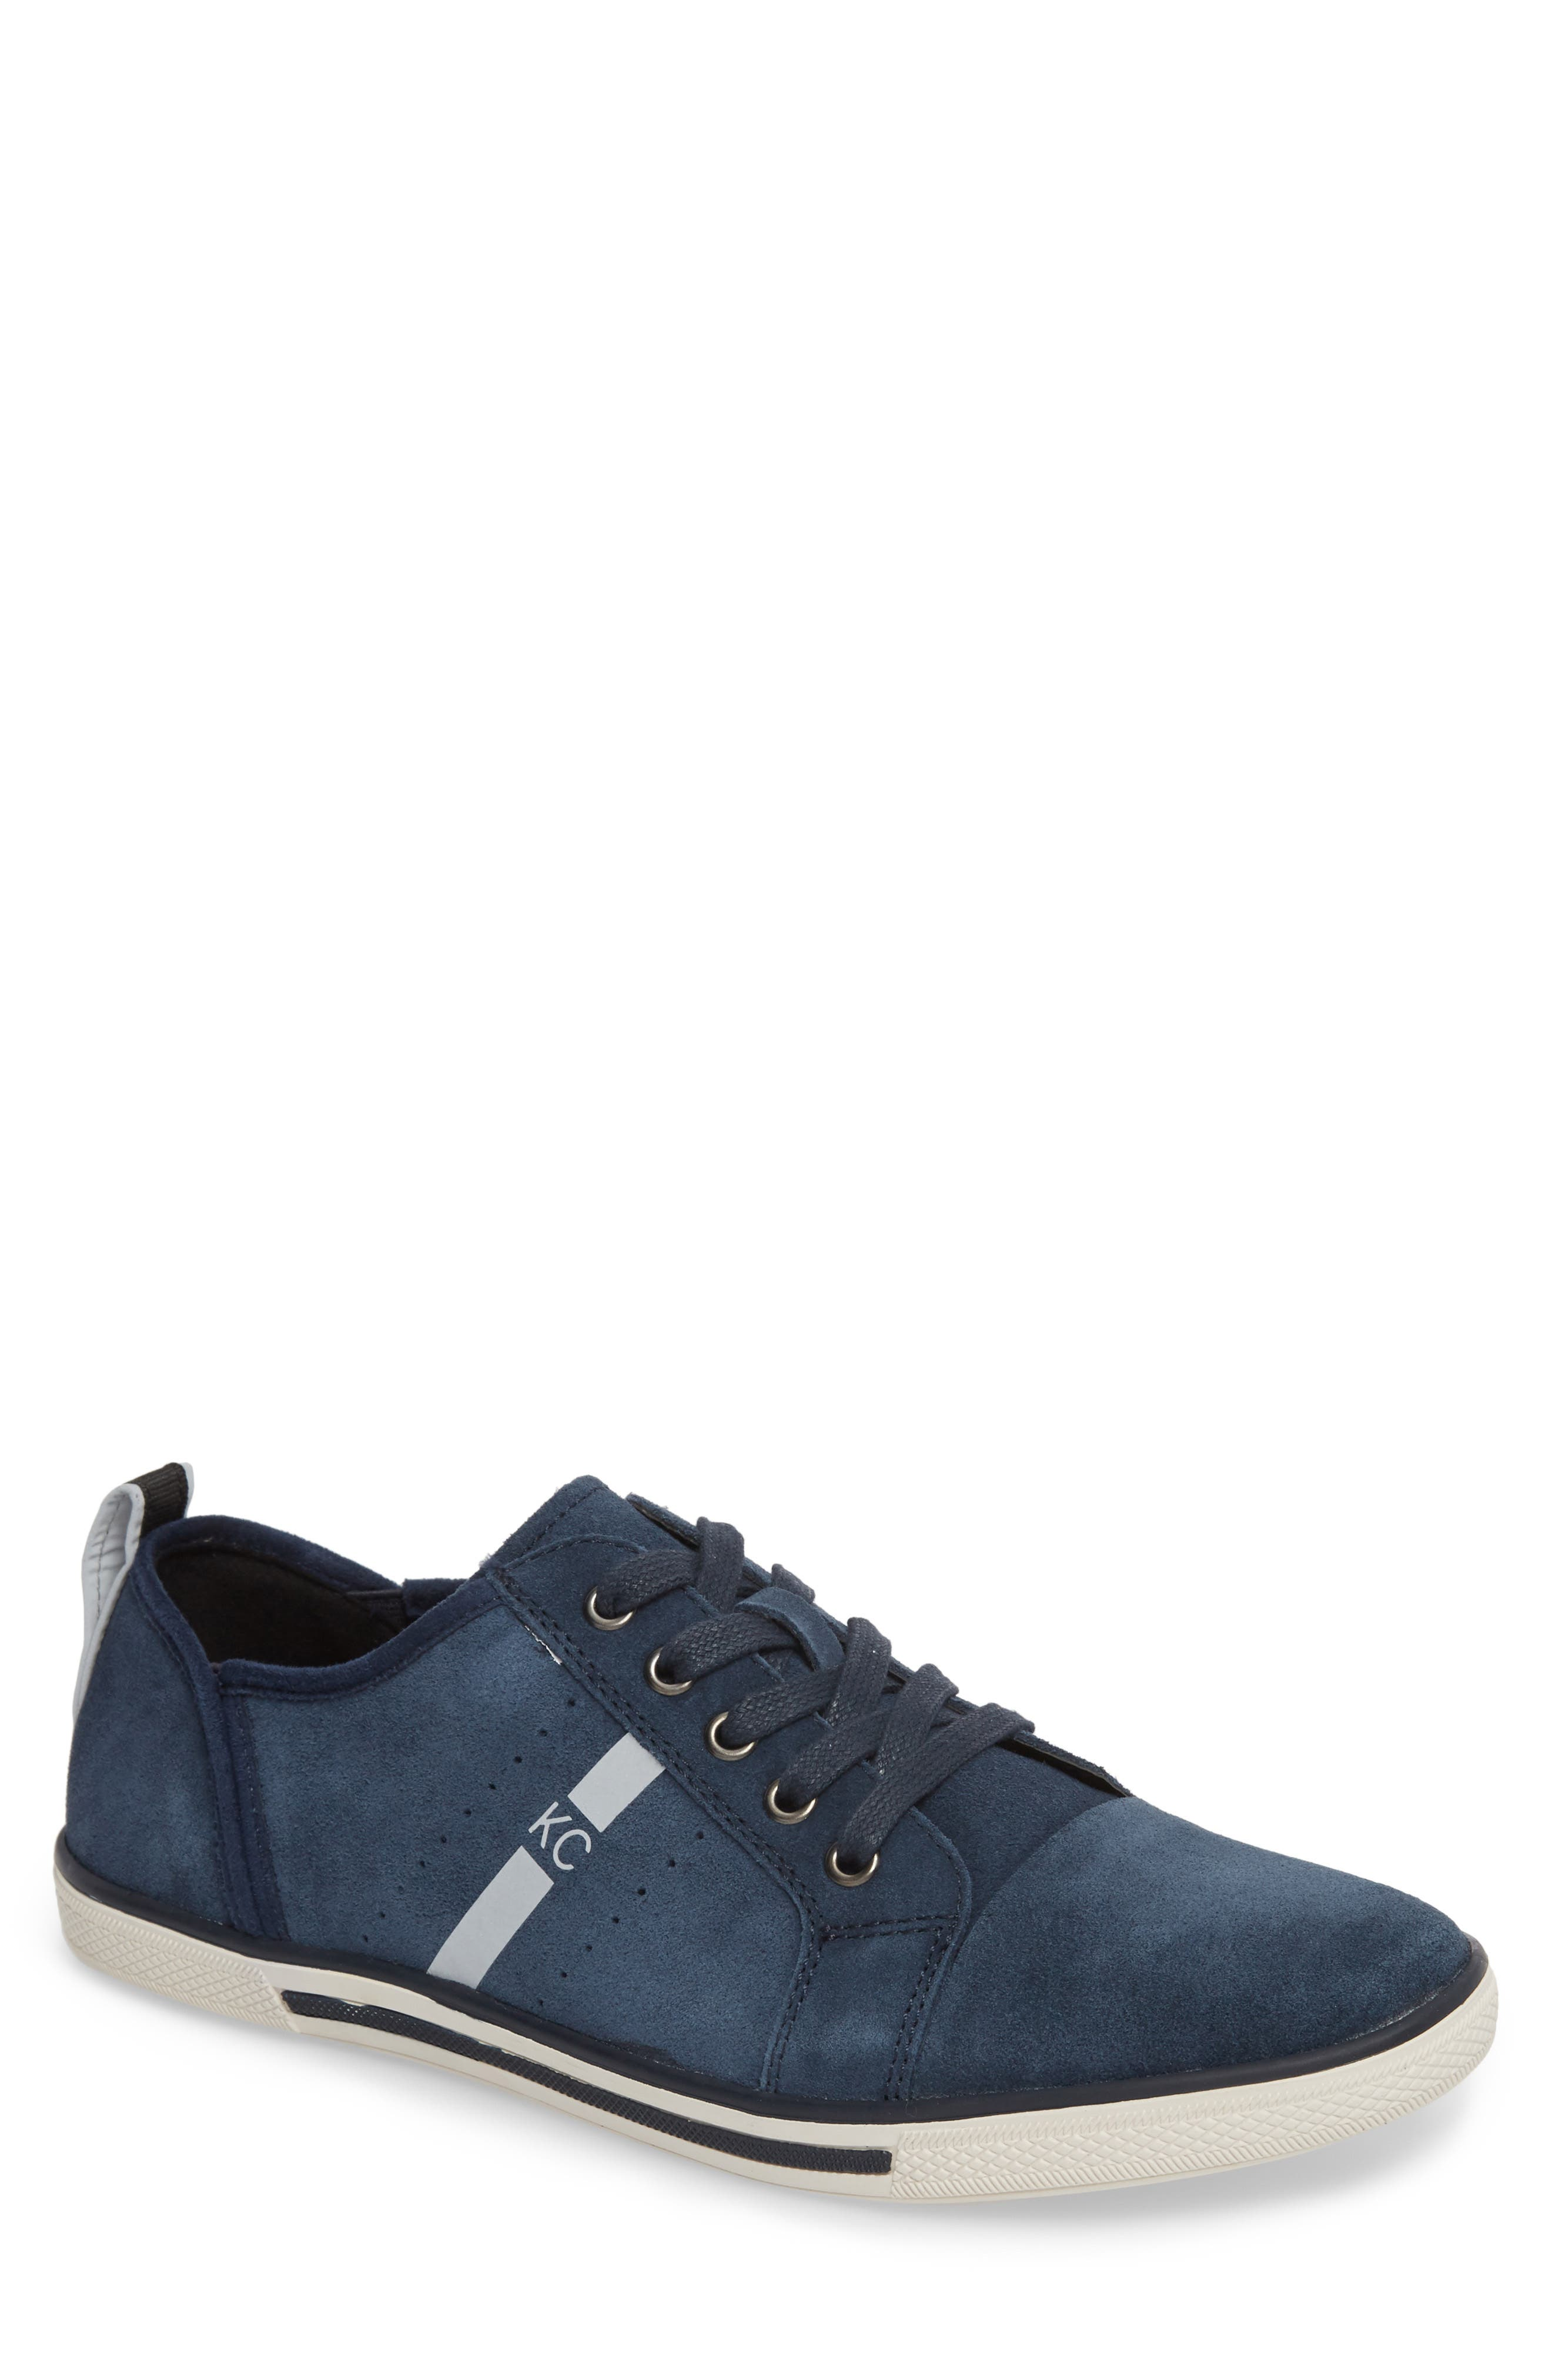 Center Low Sneaker,                         Main,                         color, Navy